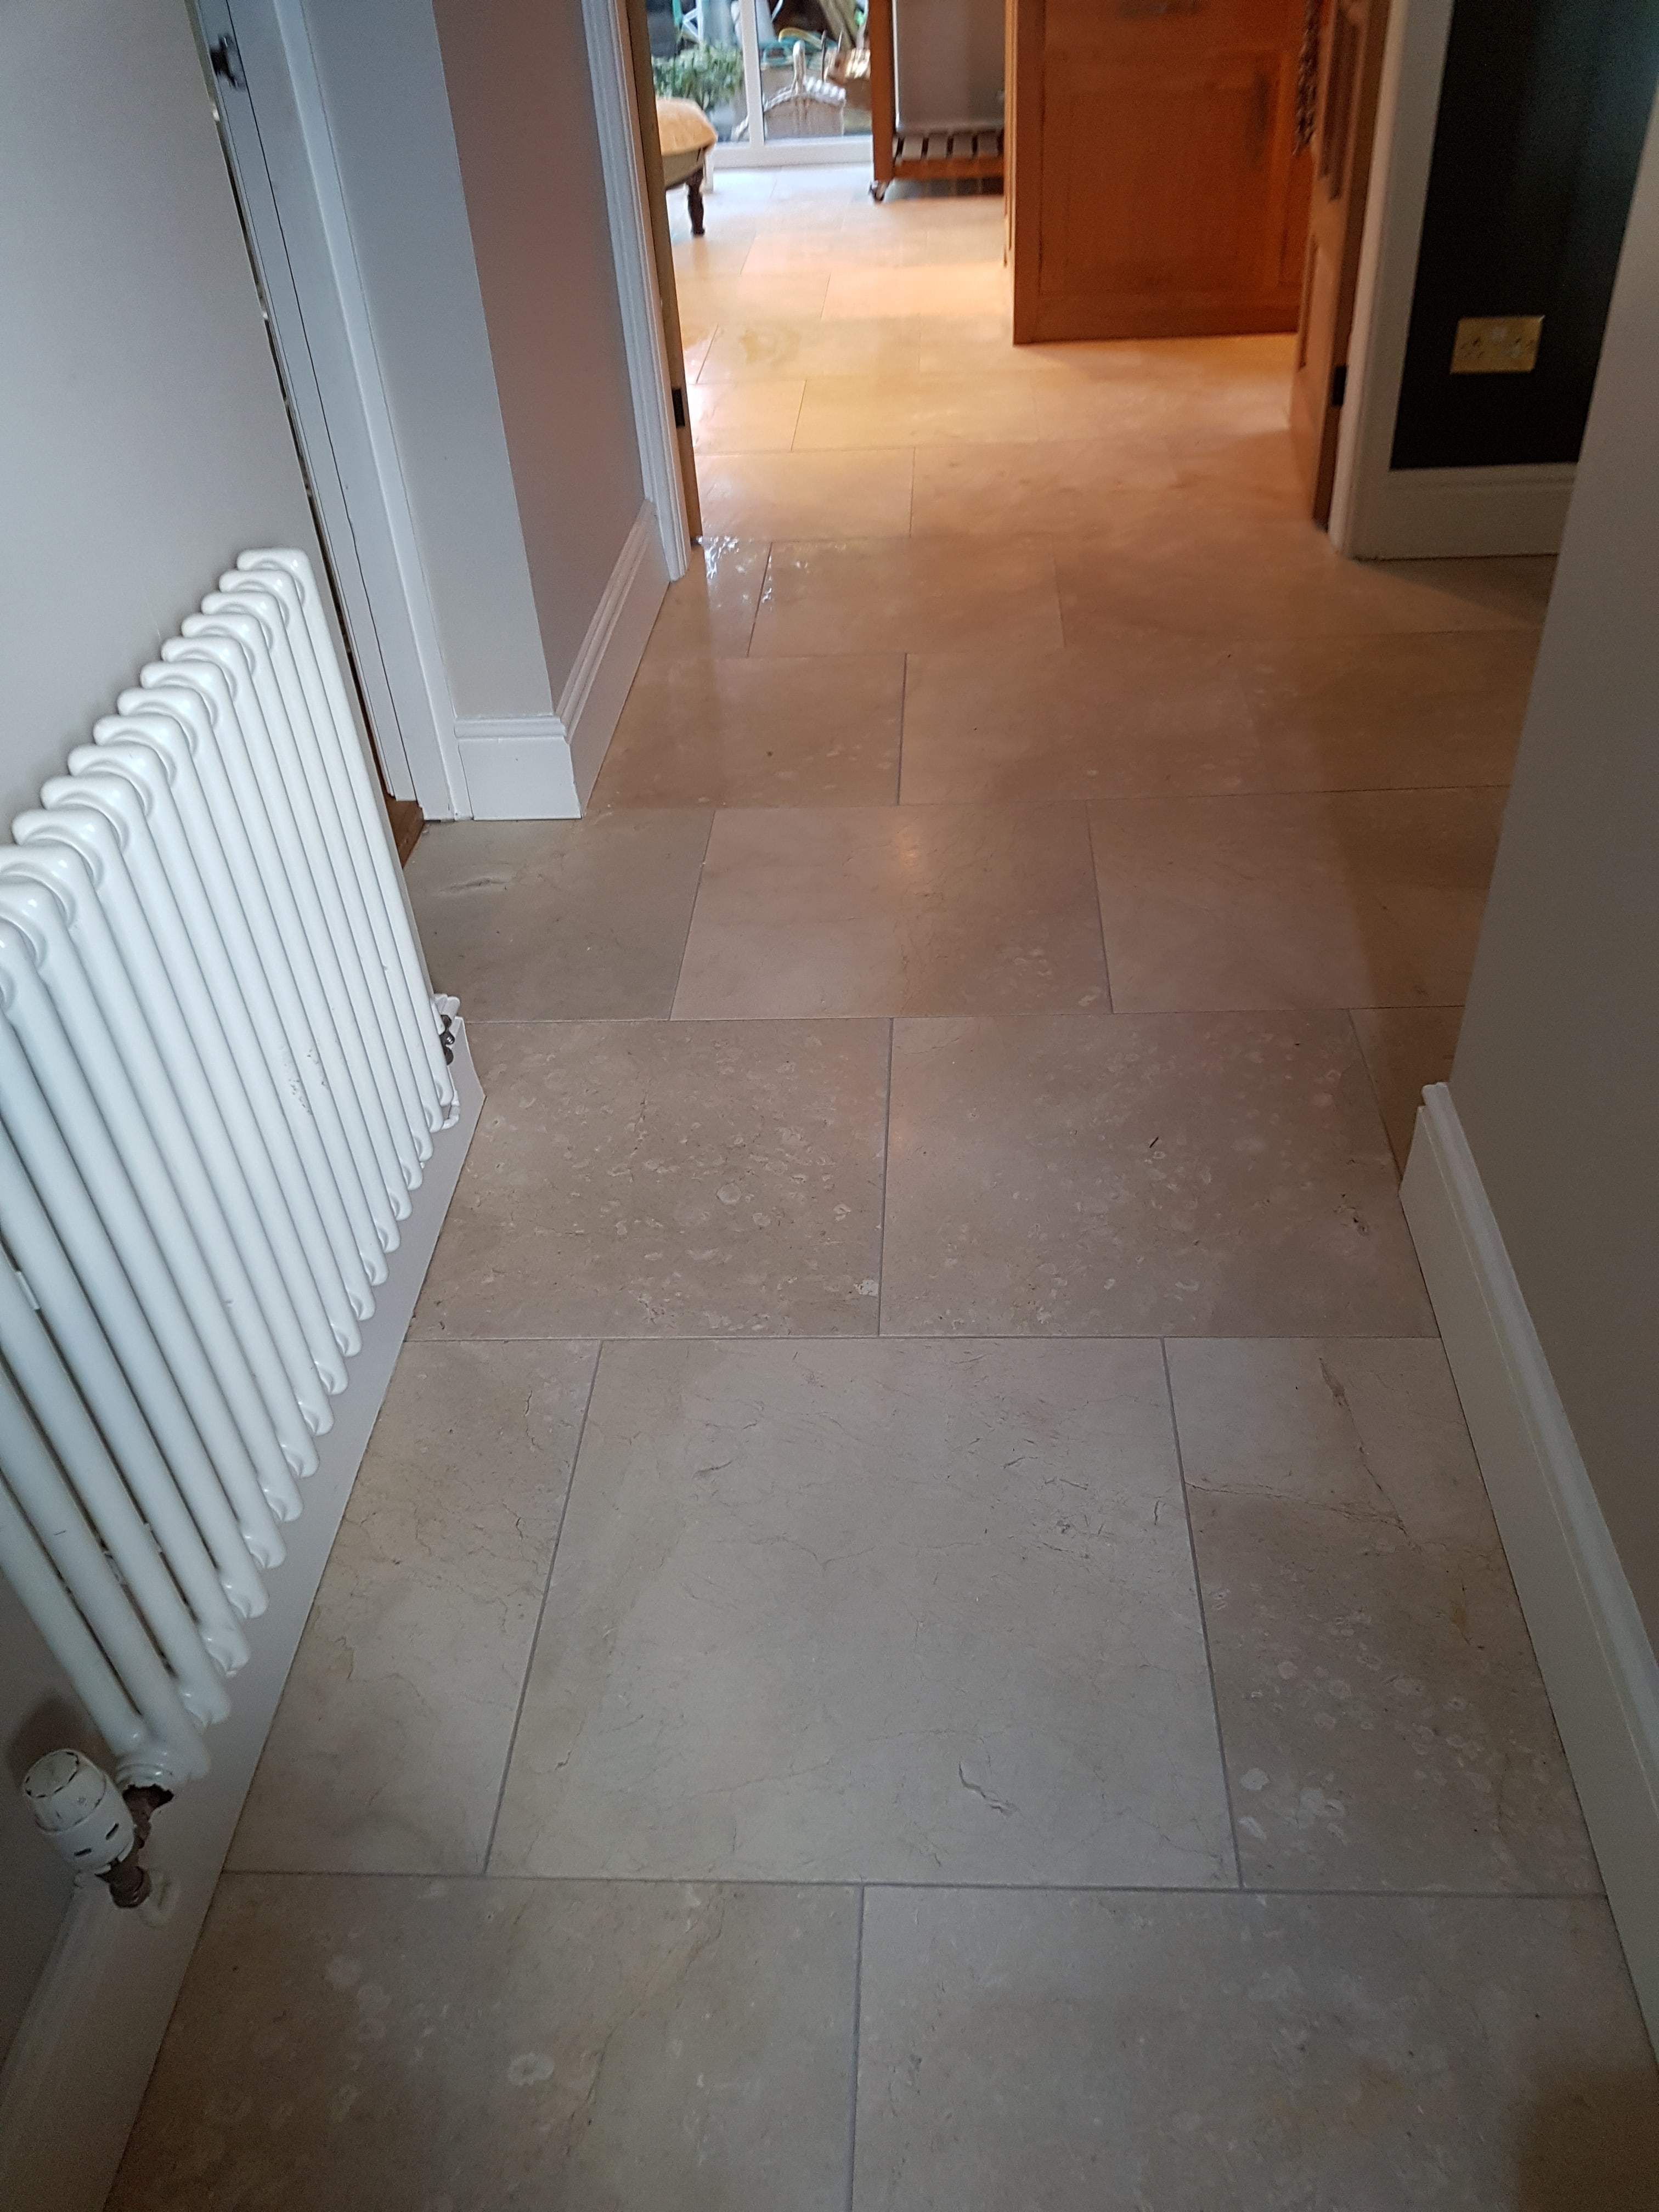 Polishing marble floor tiles in willington tile cleaners tile marble tiled floor before cleaned and polished willington cheshire dailygadgetfo Images